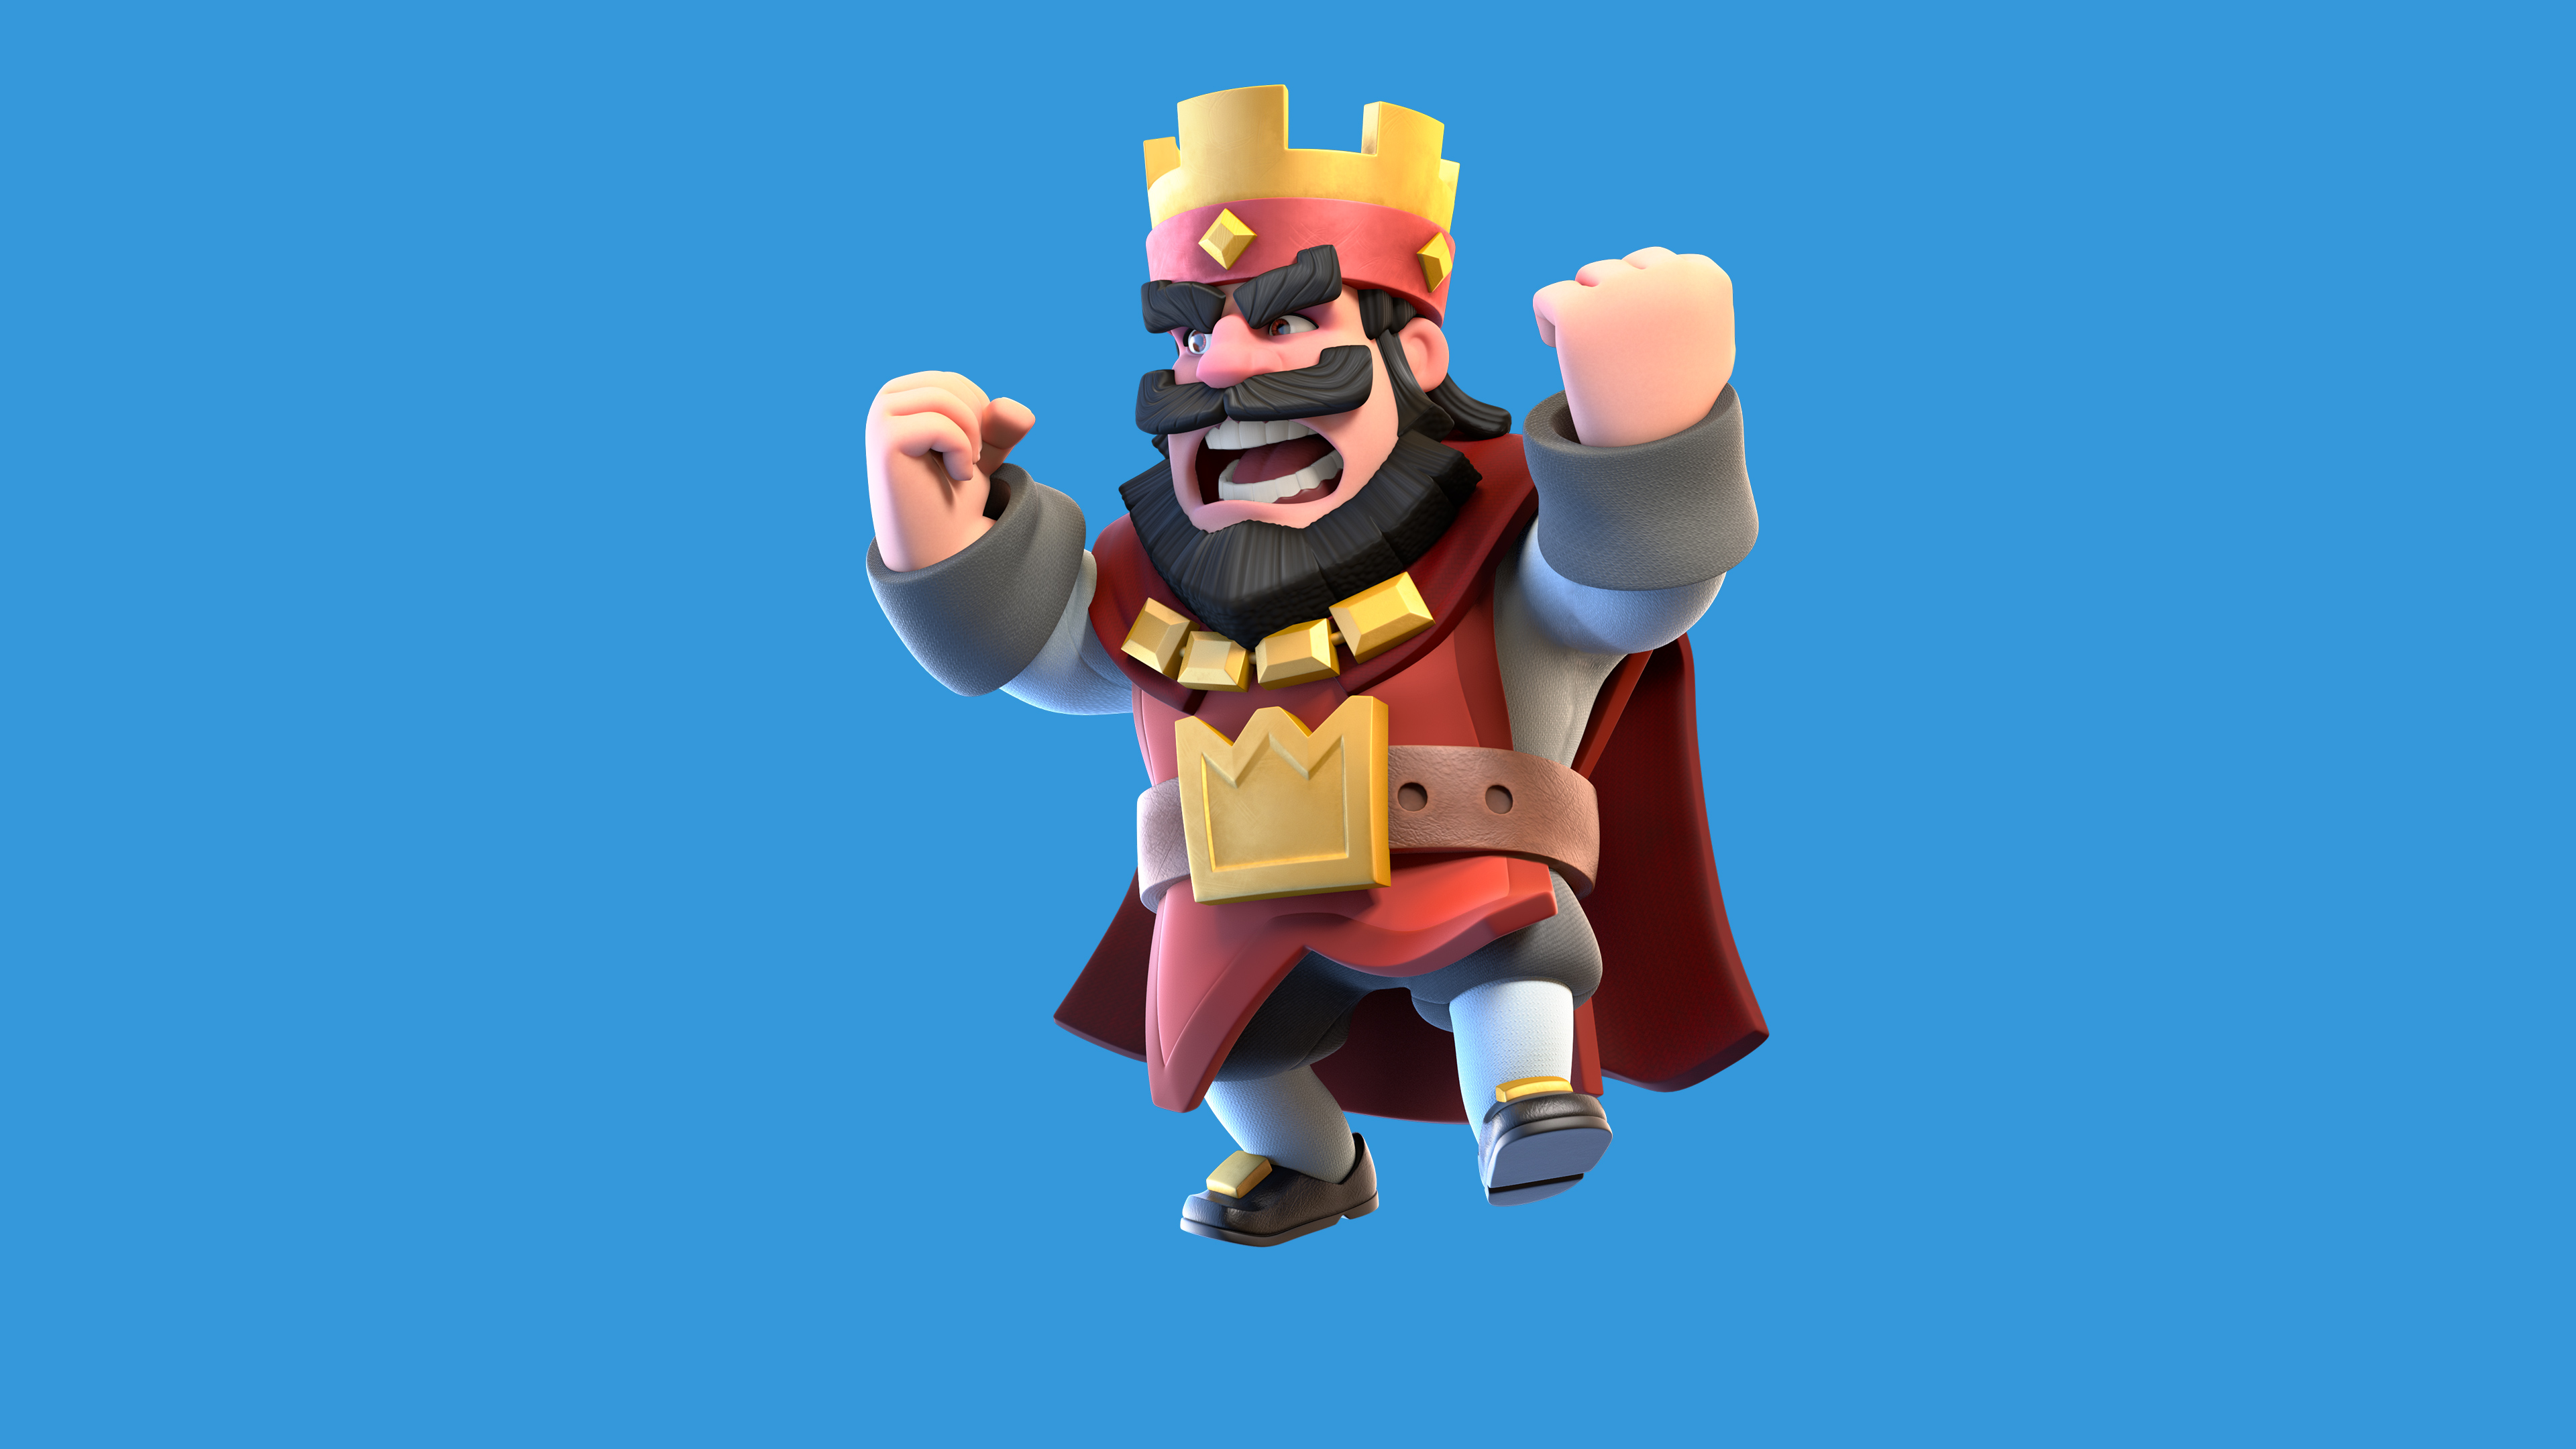 Clash Royale Red King - Clash Royale Hd , HD Wallpaper & Backgrounds